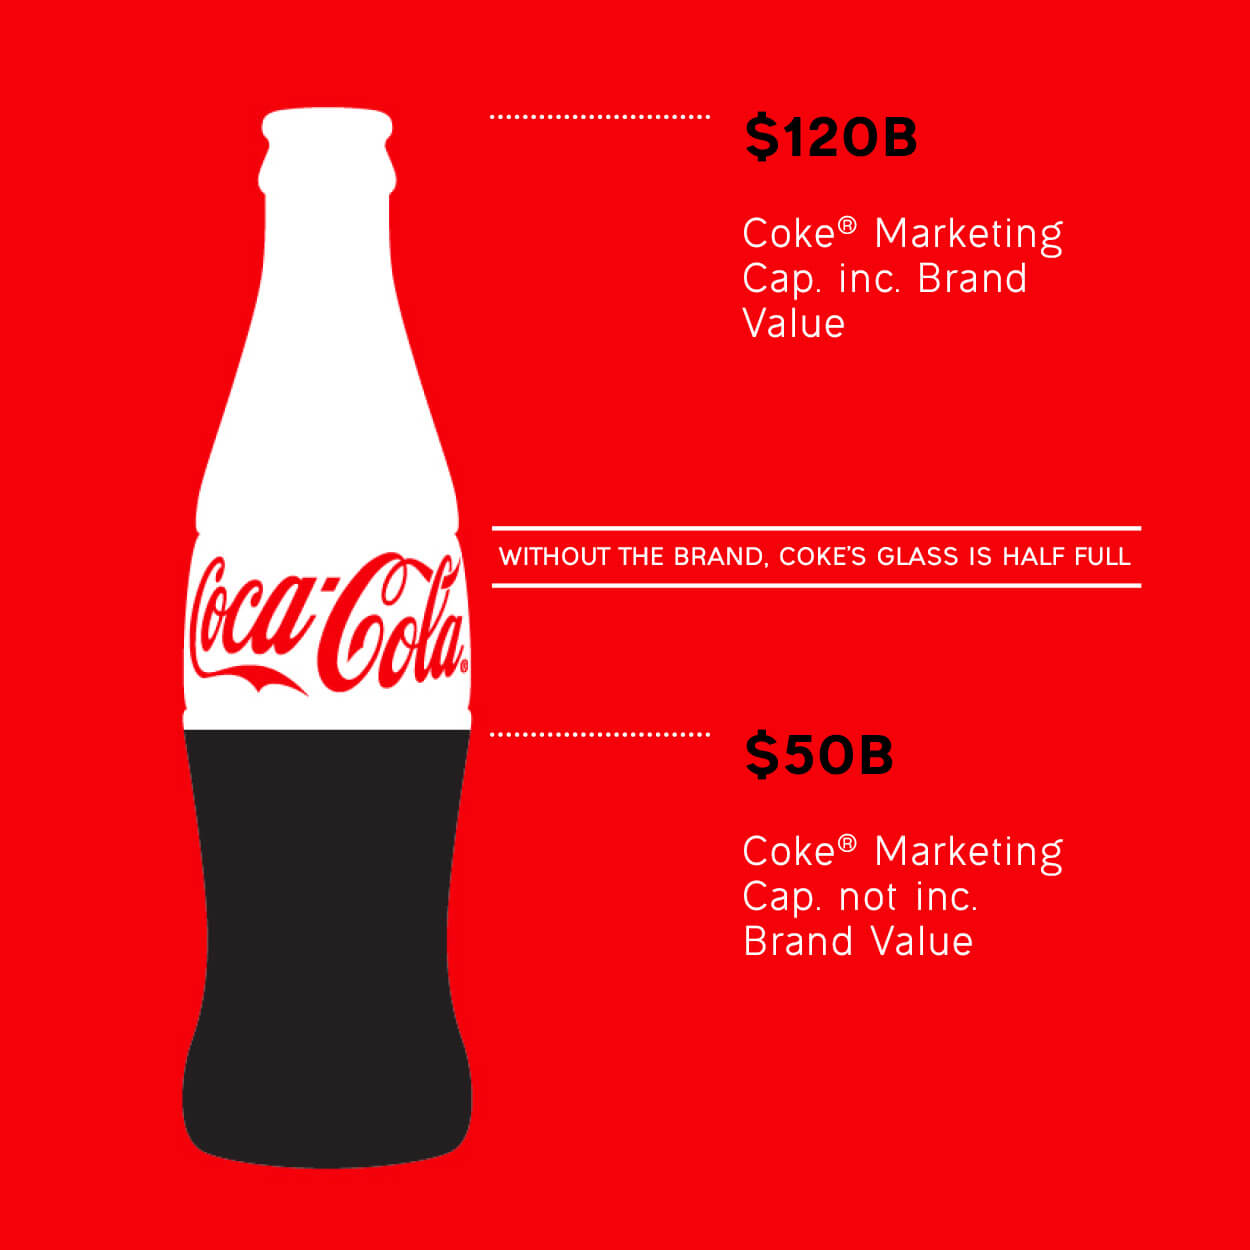 coke brand value